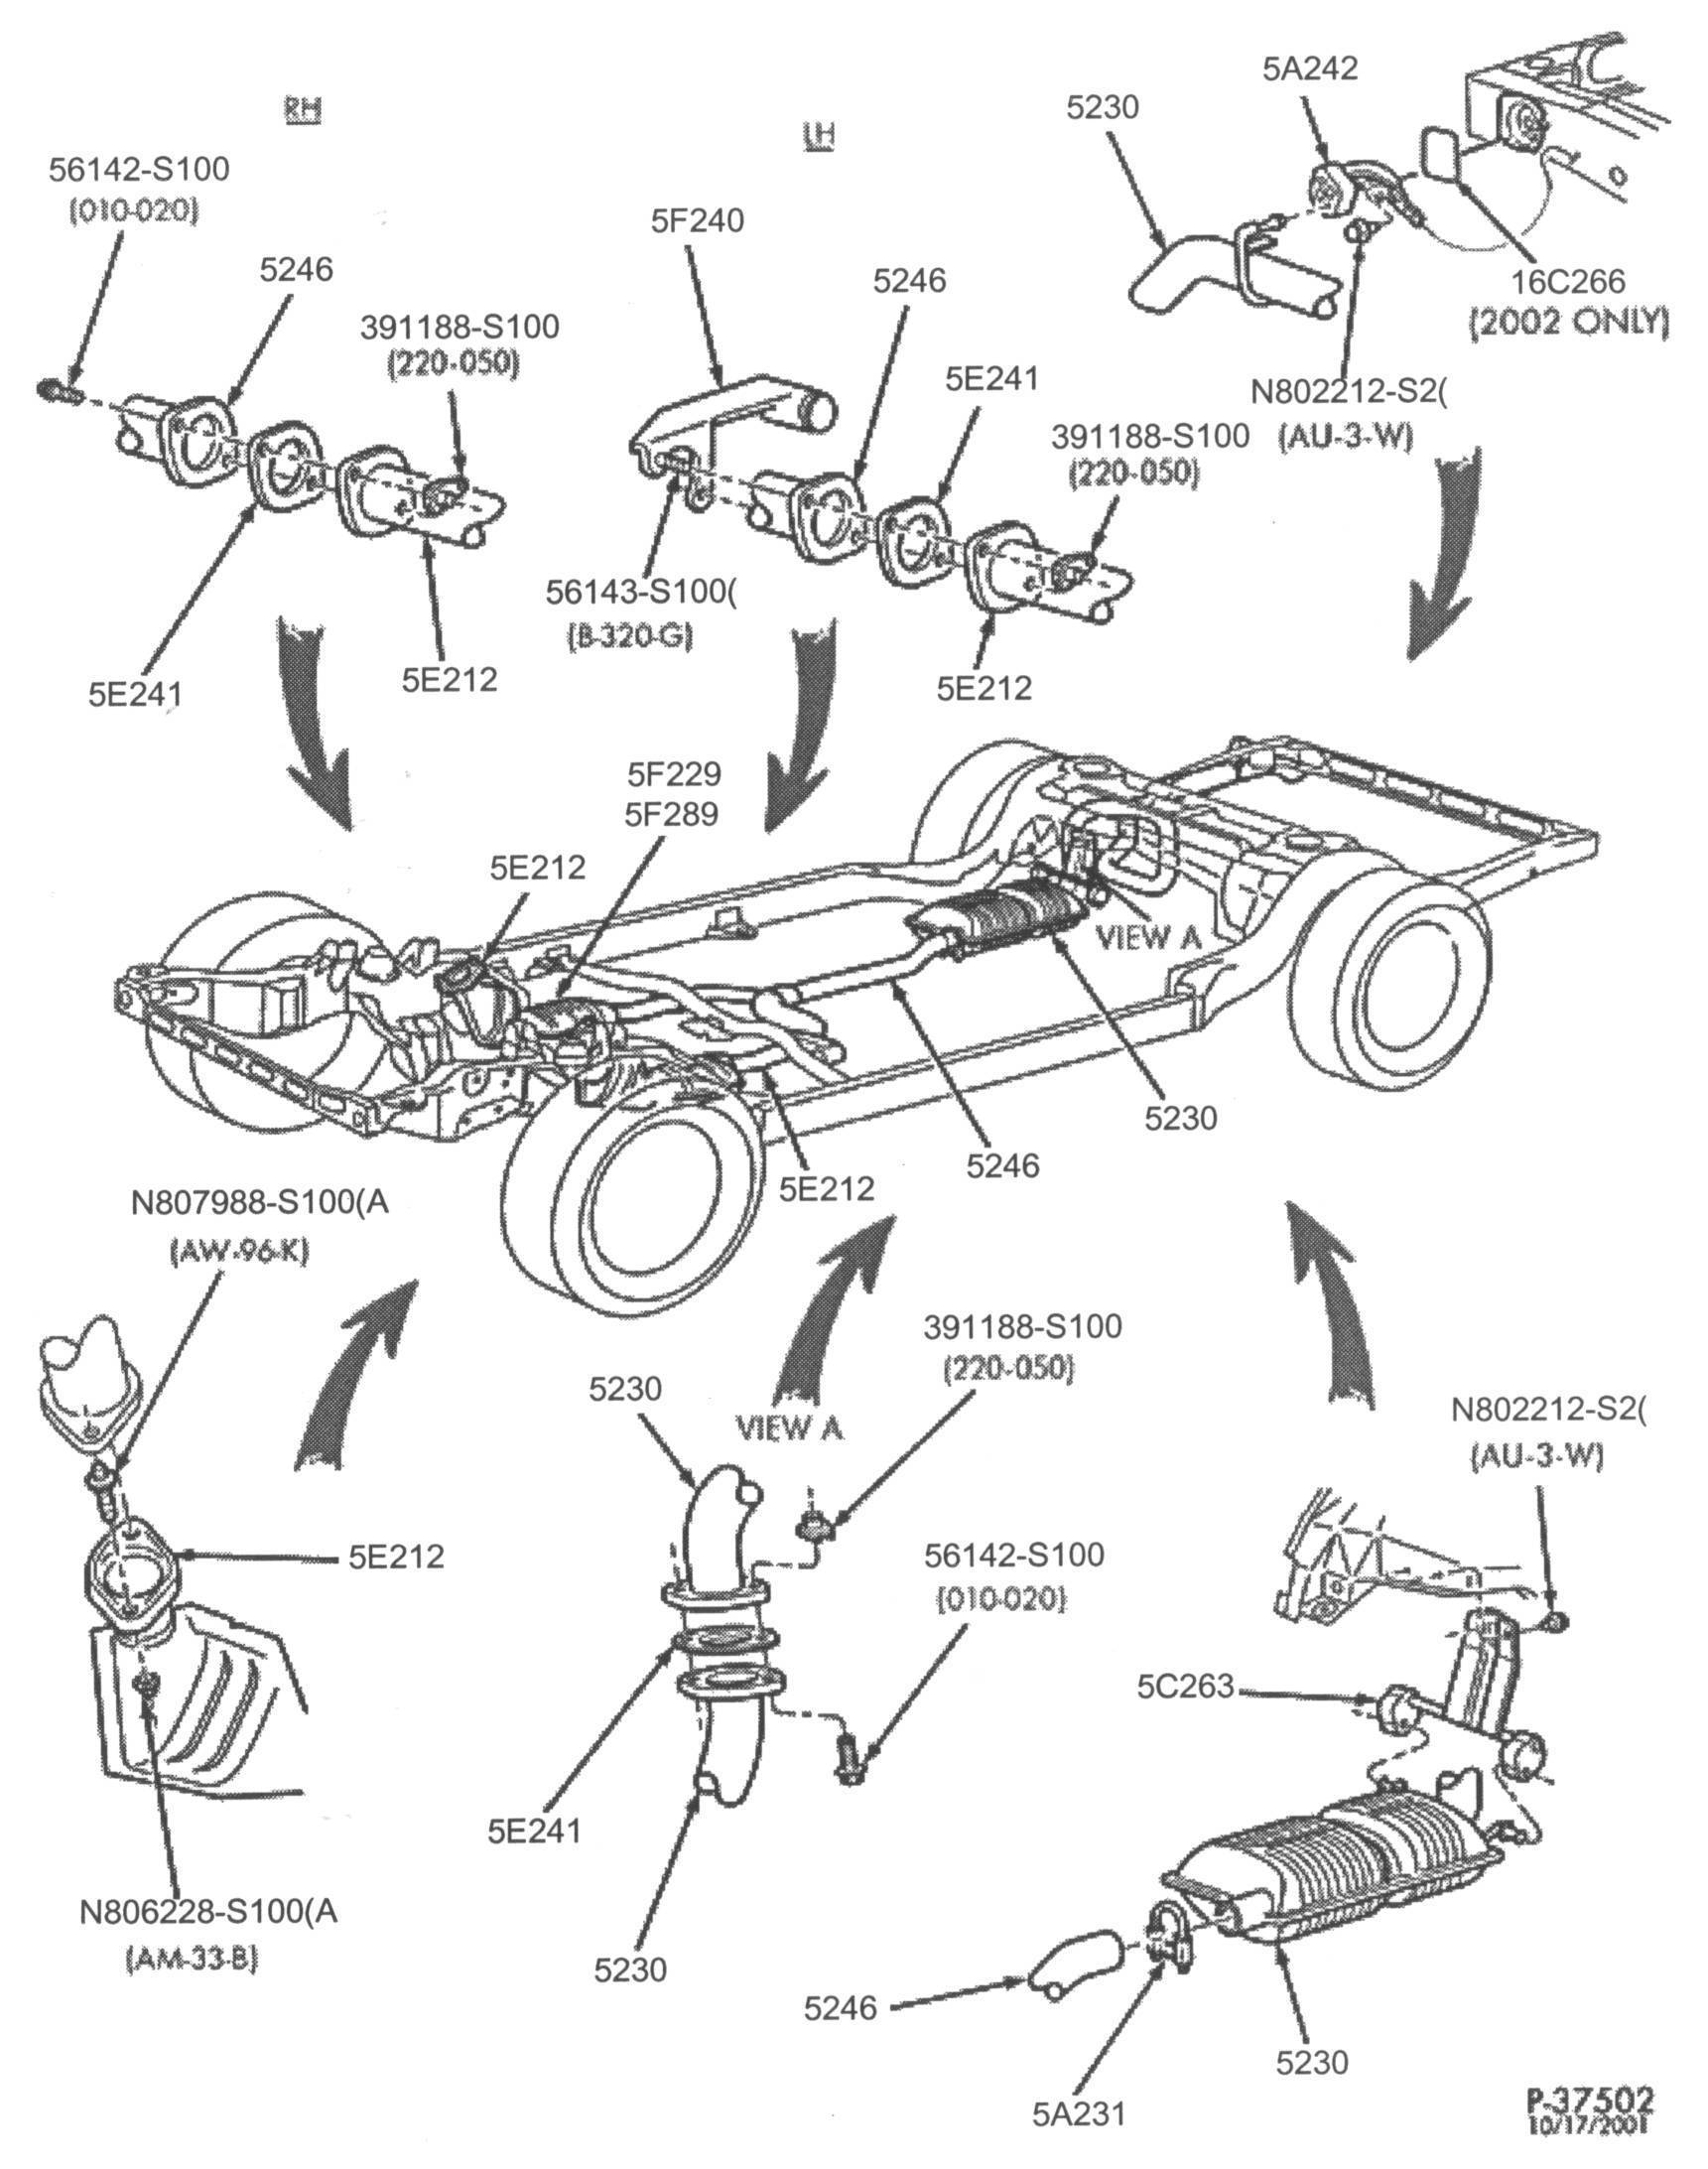 hight resolution of below are some parts diagrams for original equipment ford exhaust system service parts that can be purchased at your local ford dealer